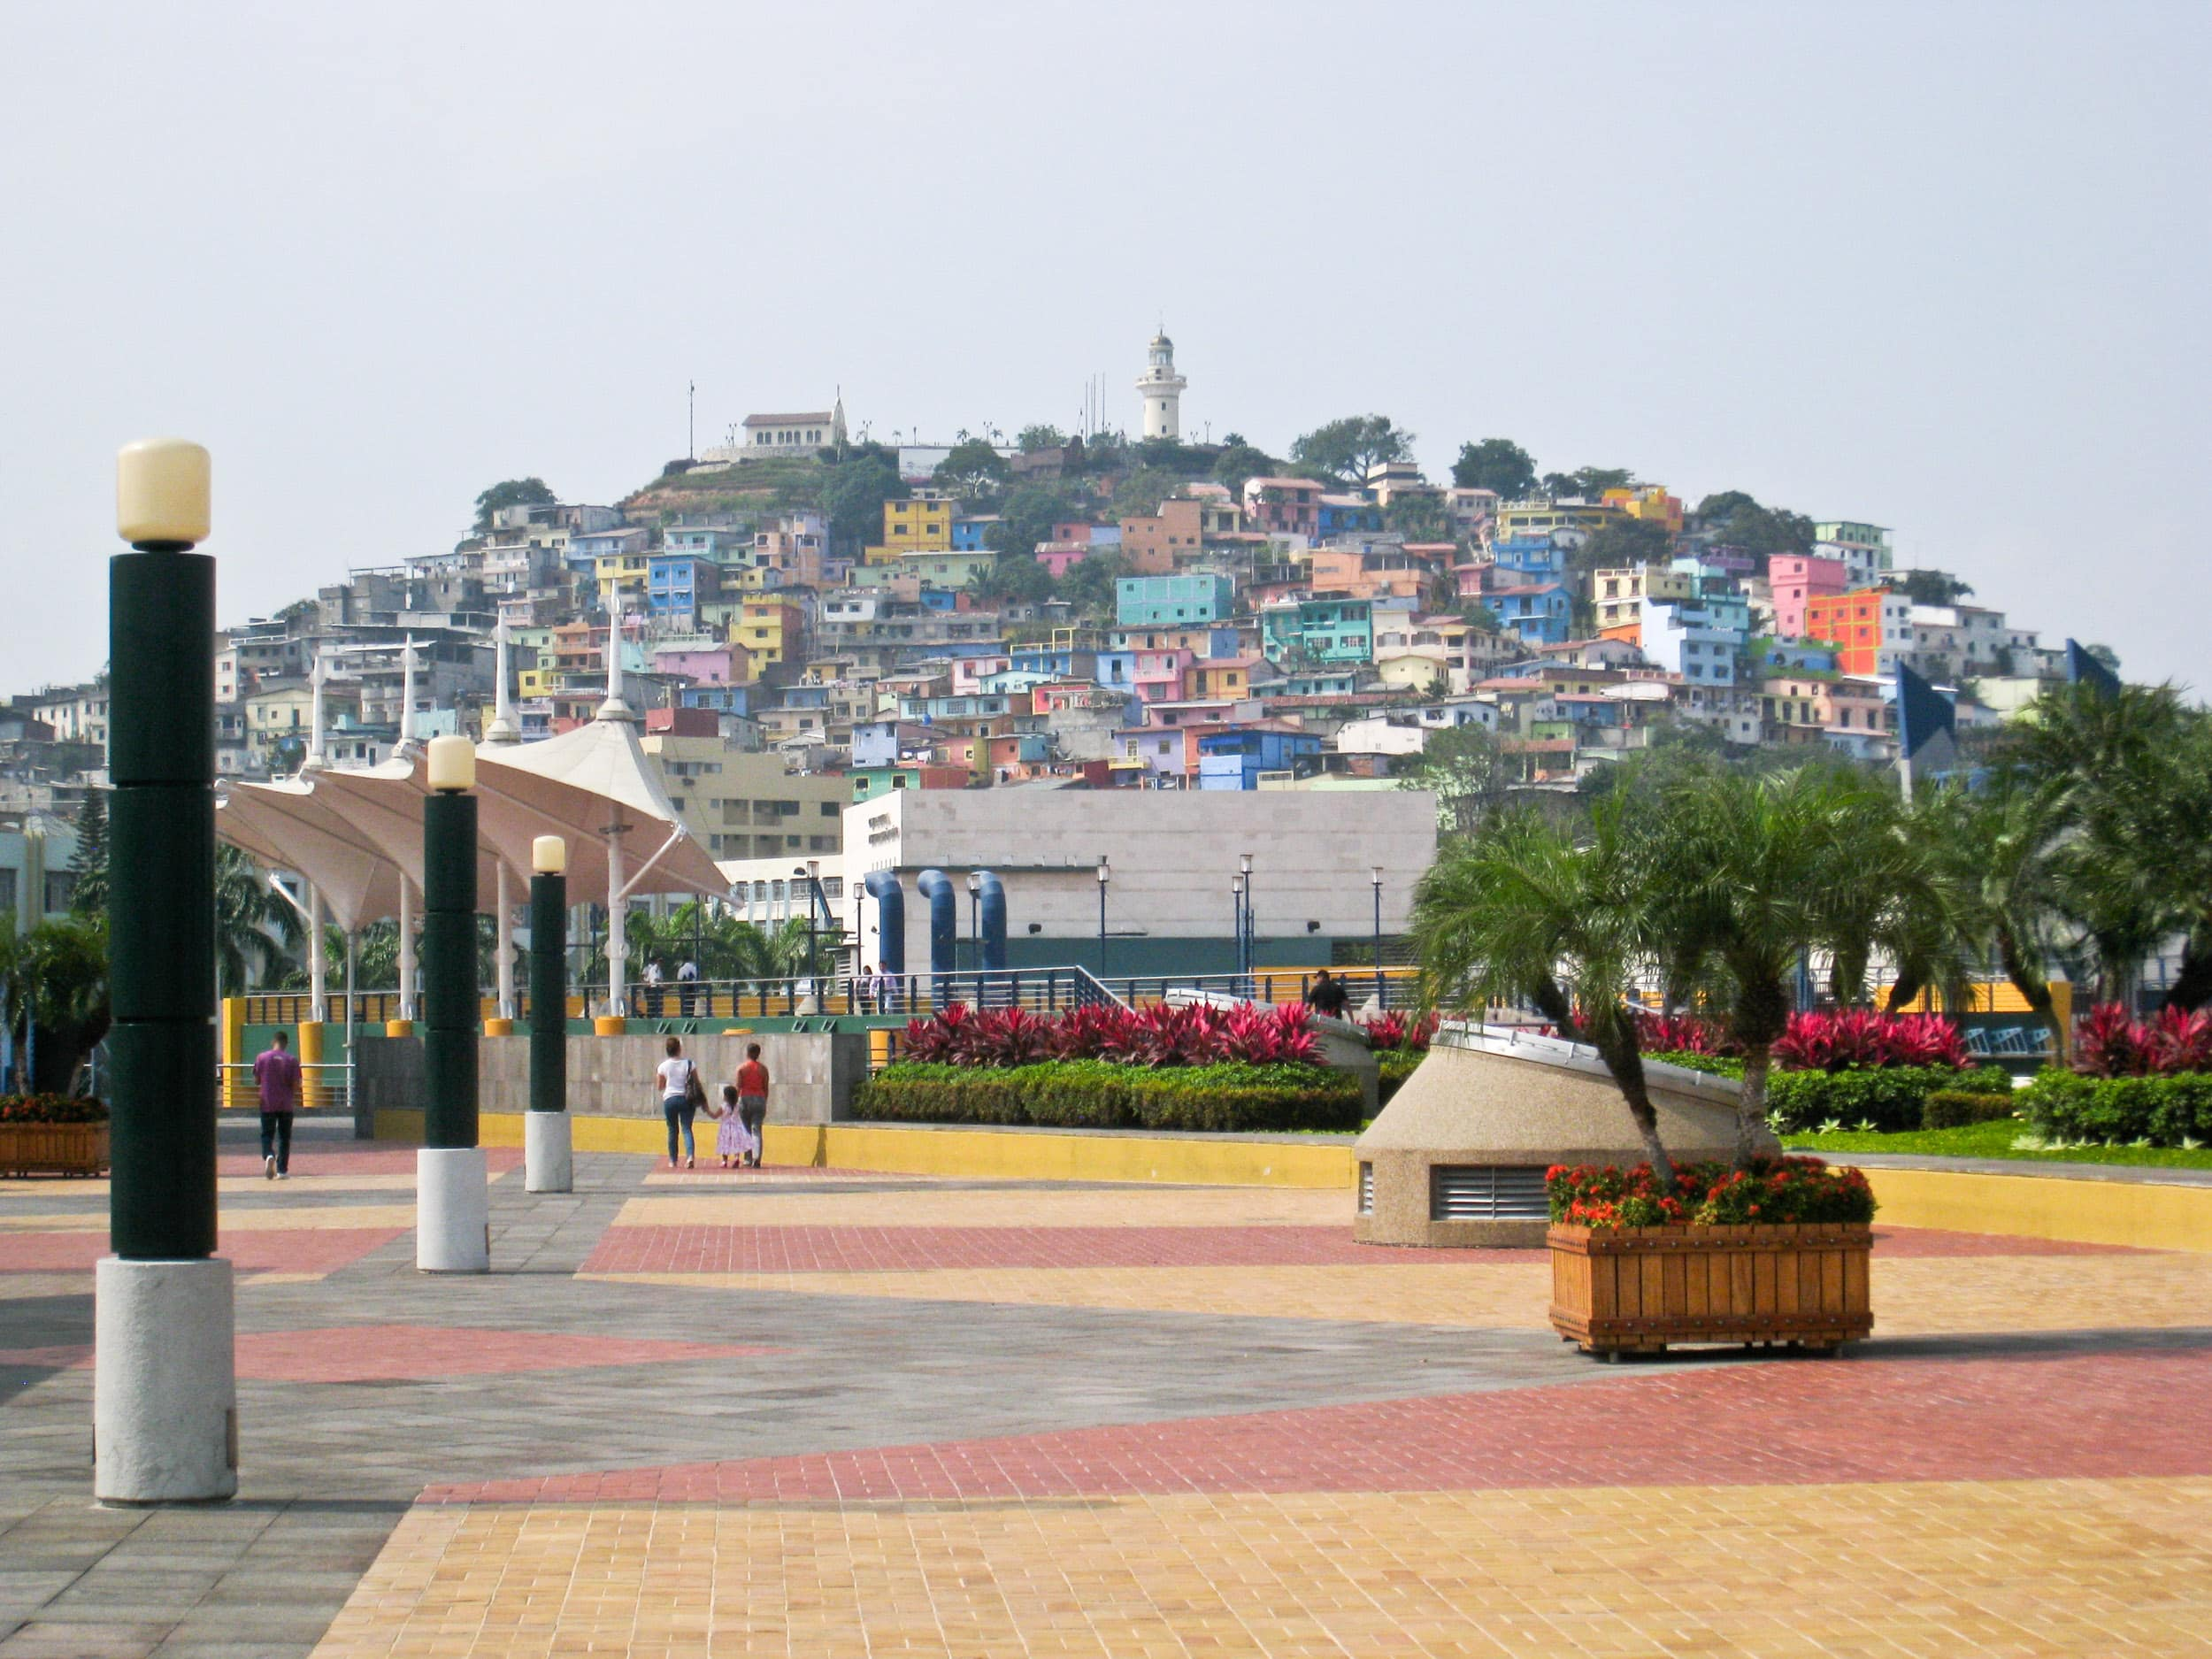 A visit to Las Penas belongs in any reputable Guayaquil travel guide